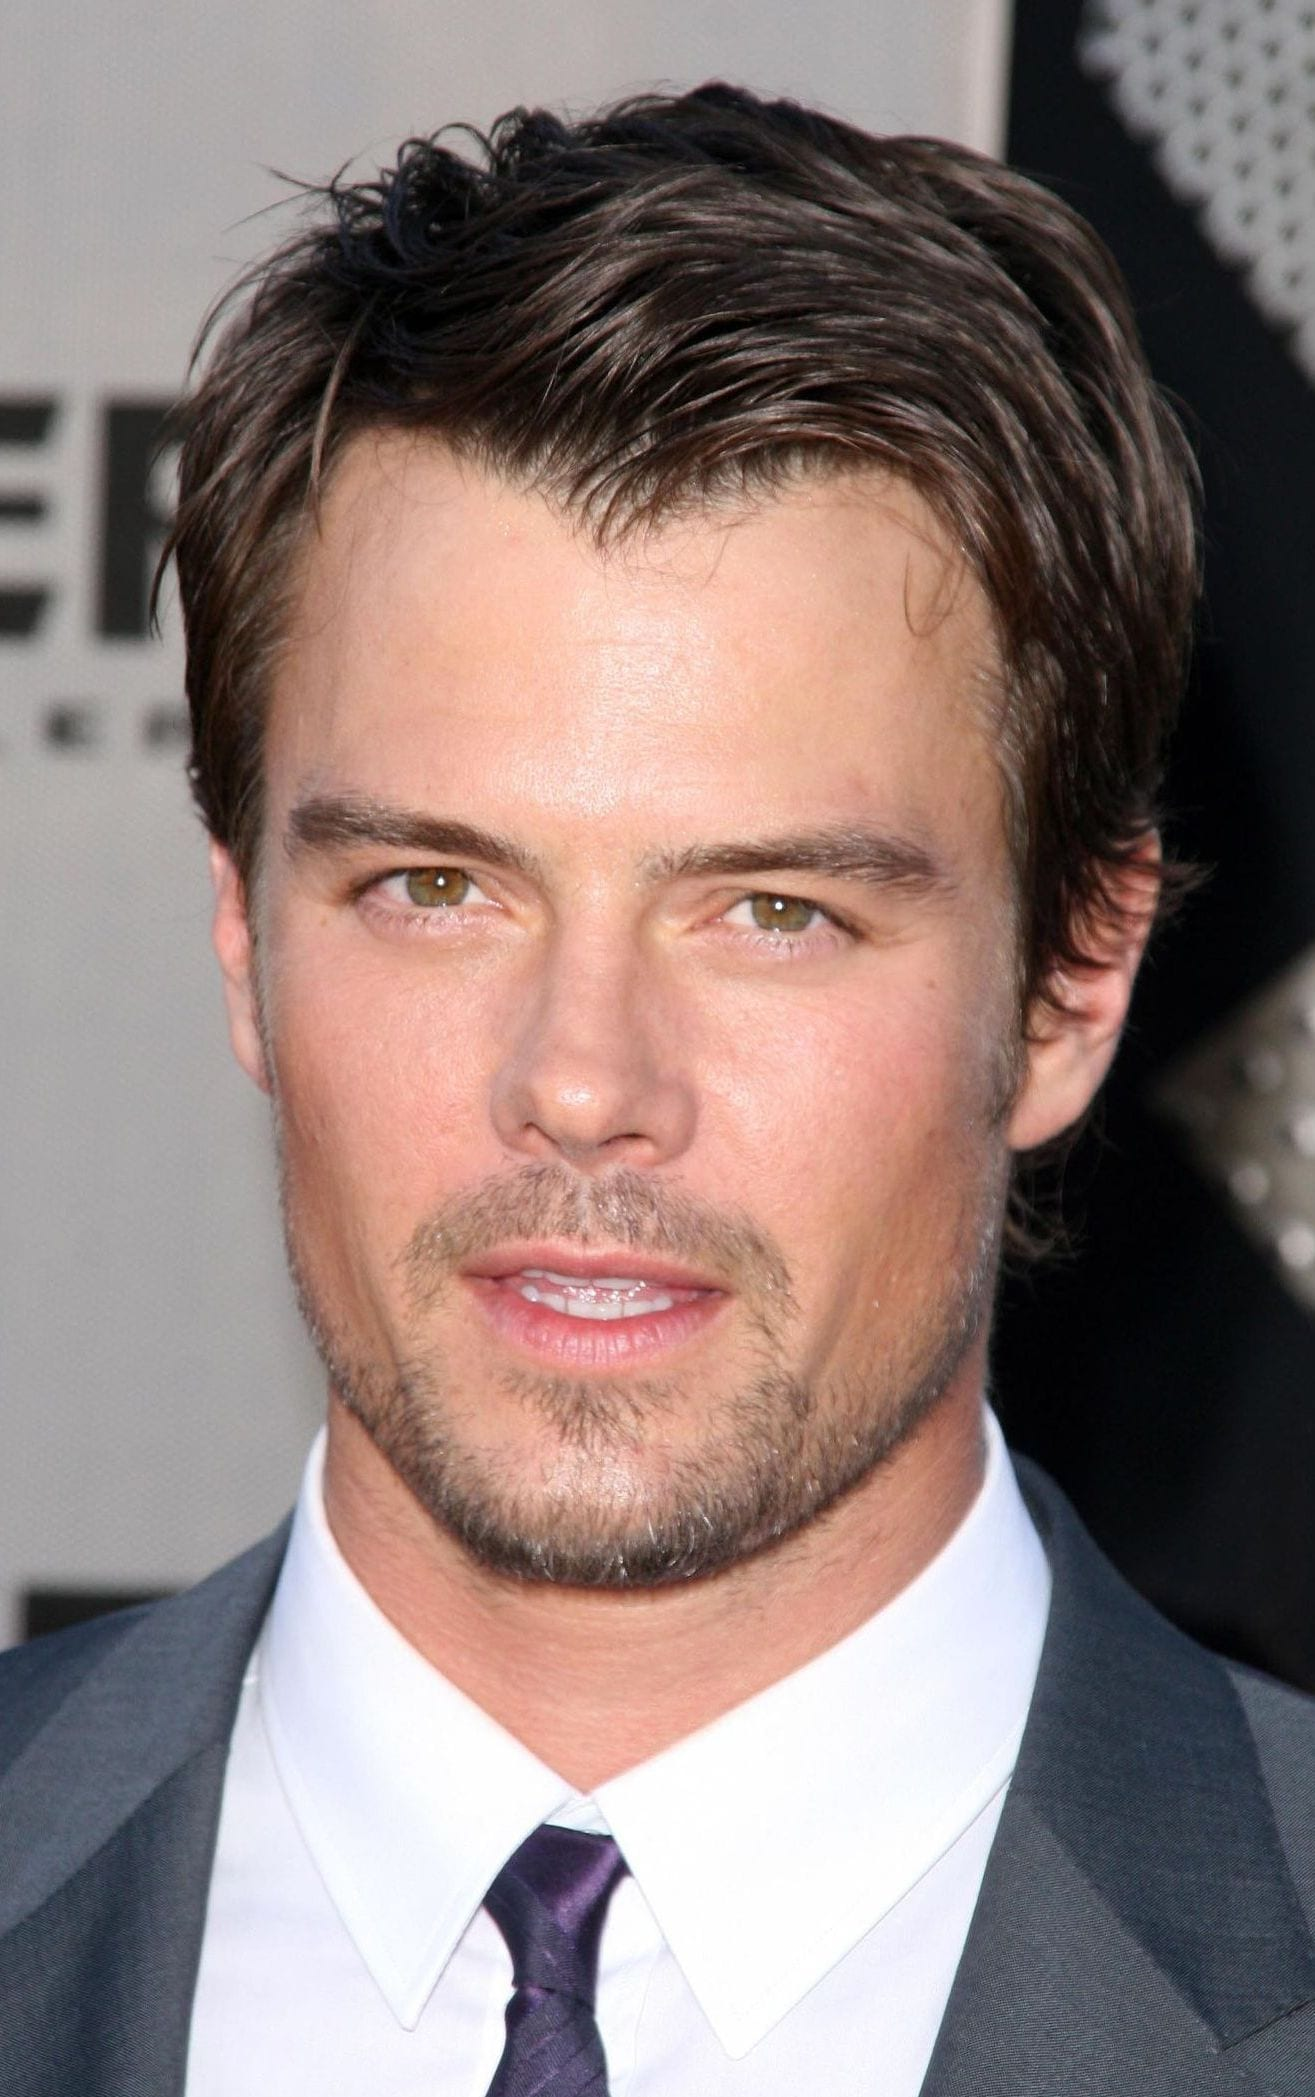 Josh Duhamel widow peak messy side part comb over